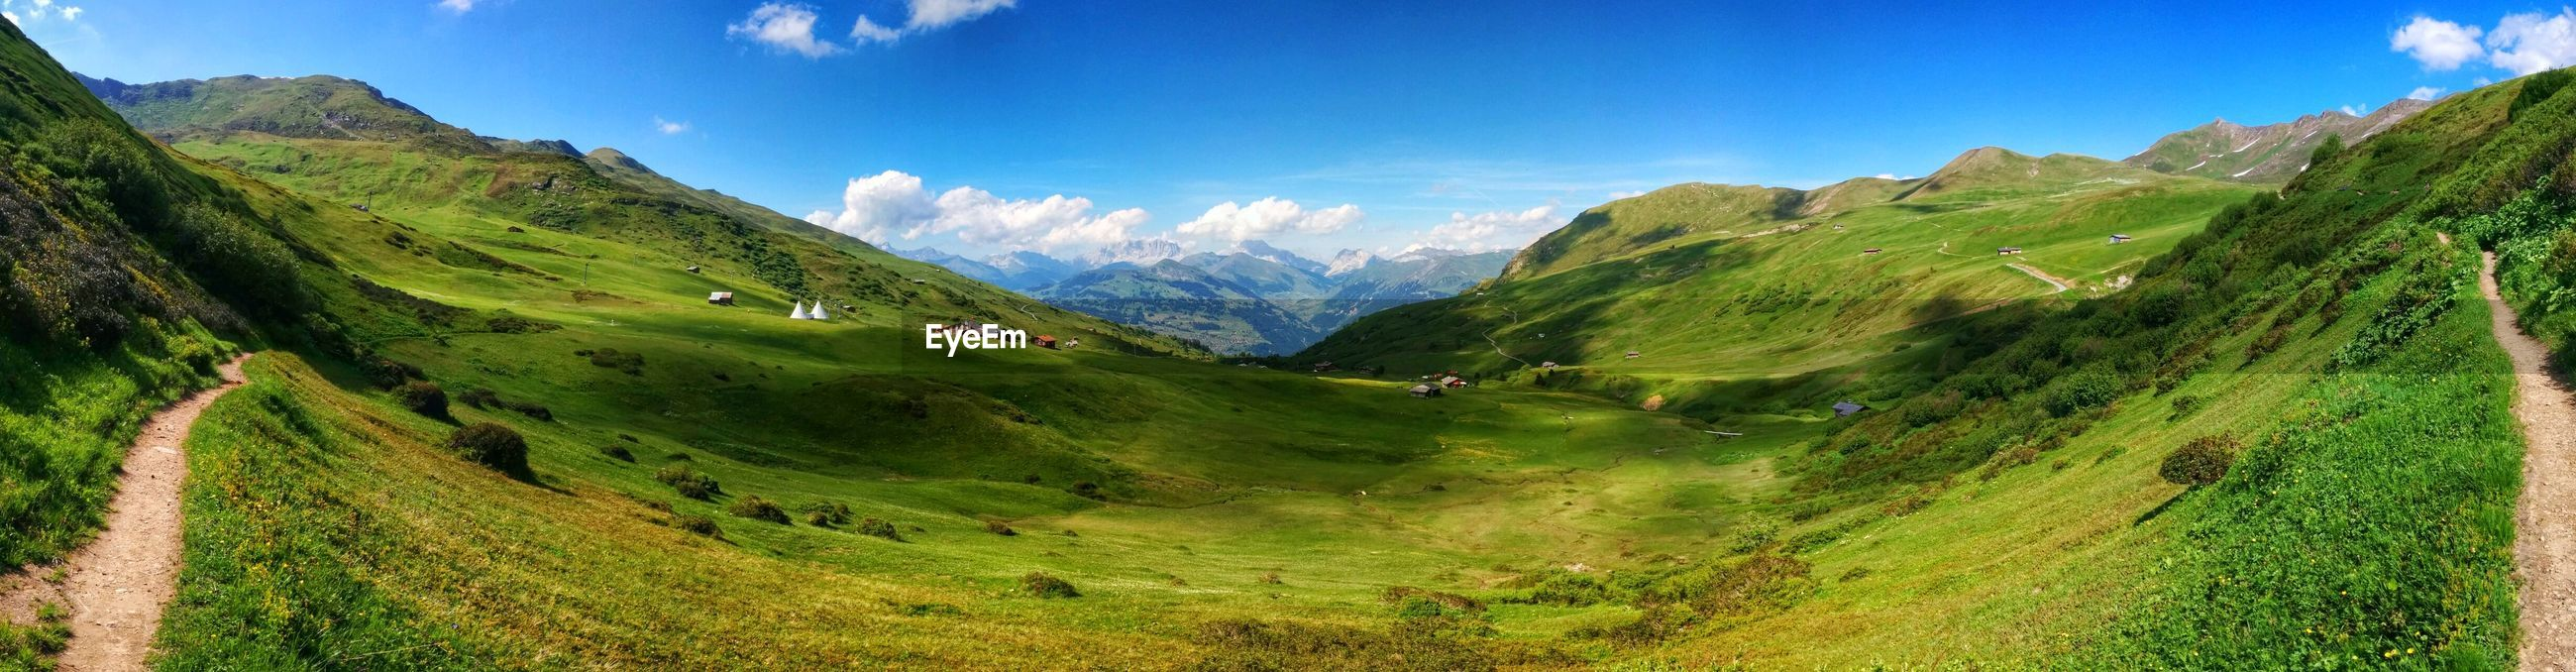 Panoramic view of valley